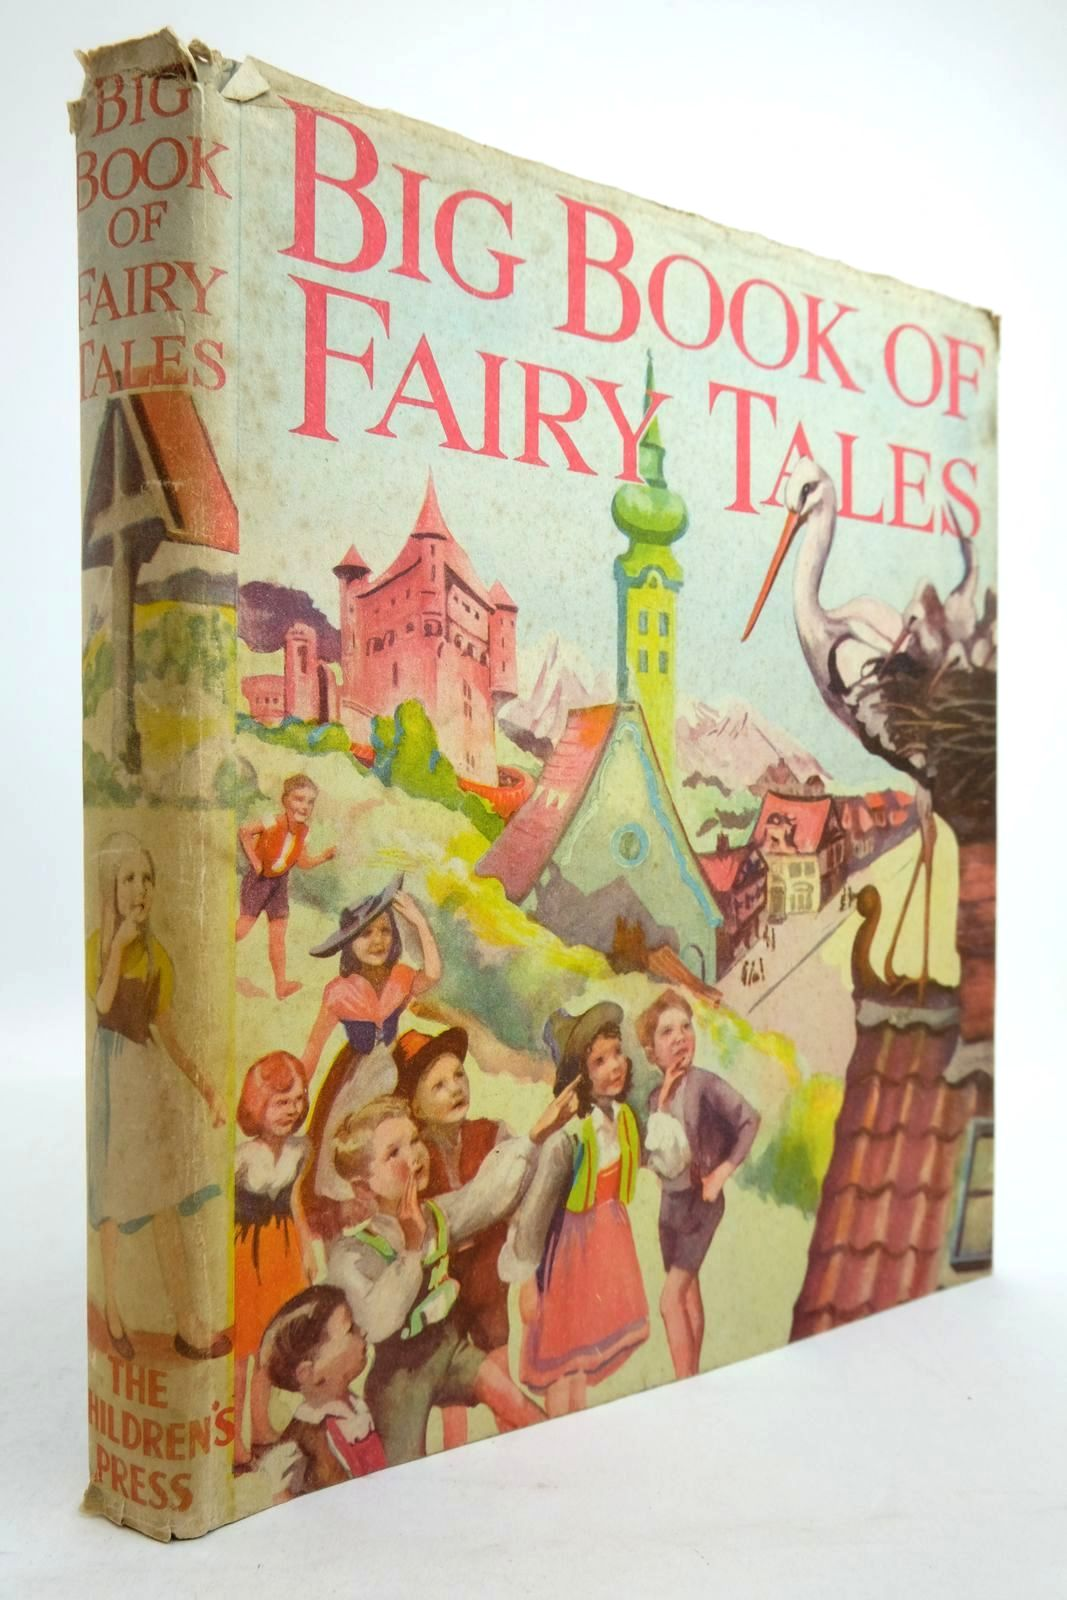 Photo of BIG BOOK OF FAIRY TALES written by Grimm, Brothers Andersen, Hans Christian illustrated by Anderson, Anne published by The Children's Press (STOCK CODE: 2134472)  for sale by Stella & Rose's Books